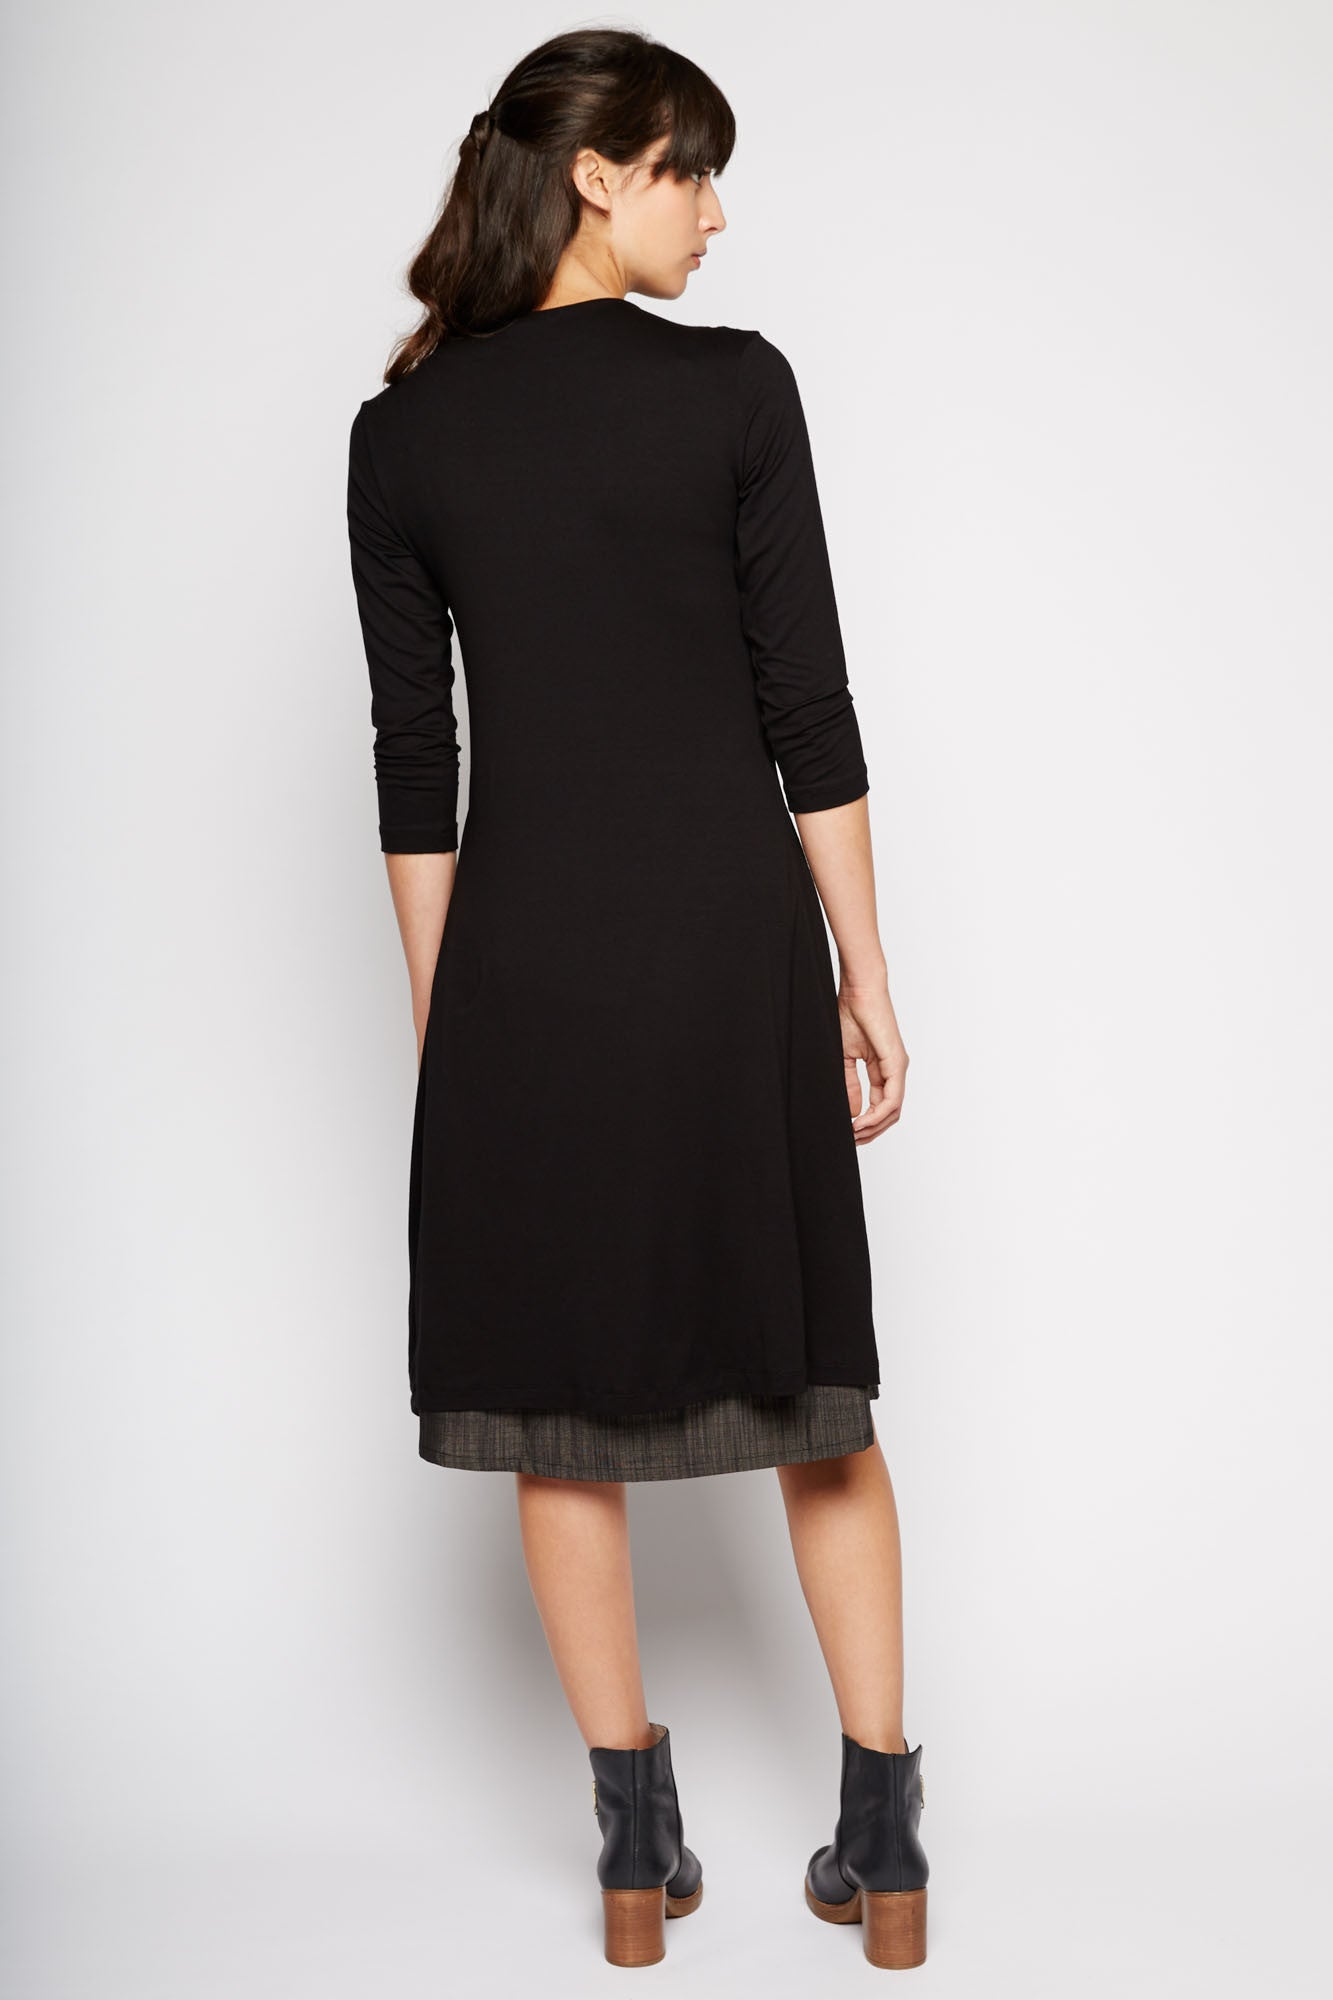 Sagittarius V-Neck Dress by Karen Klein